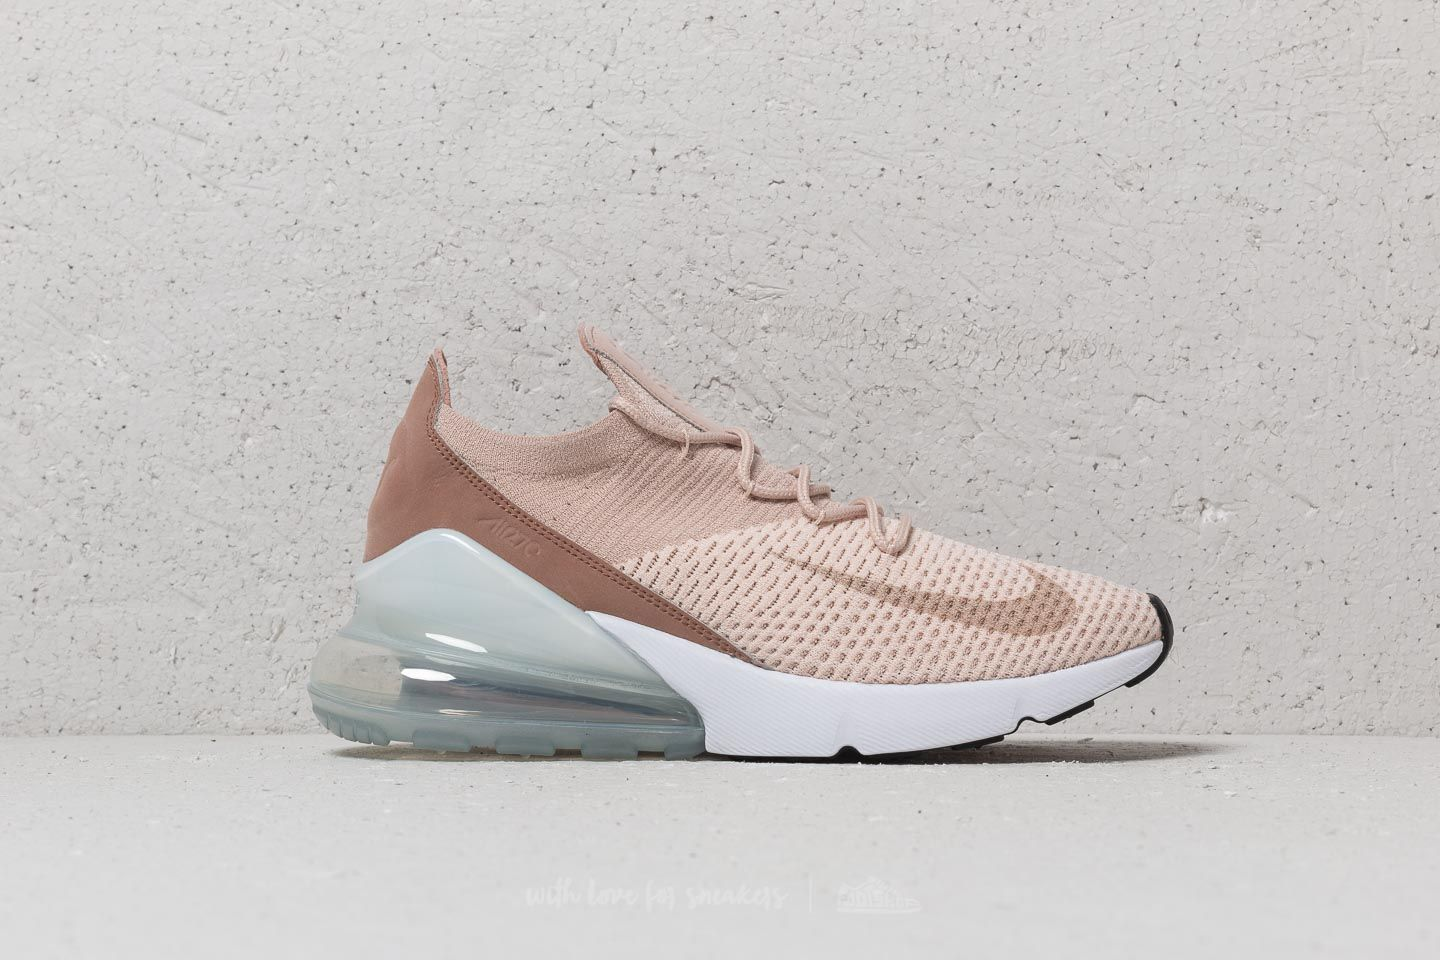 Nike Wmns Air Max 270 Flyknit Guava Ice  Particle Beige at a great price £ d46de0357